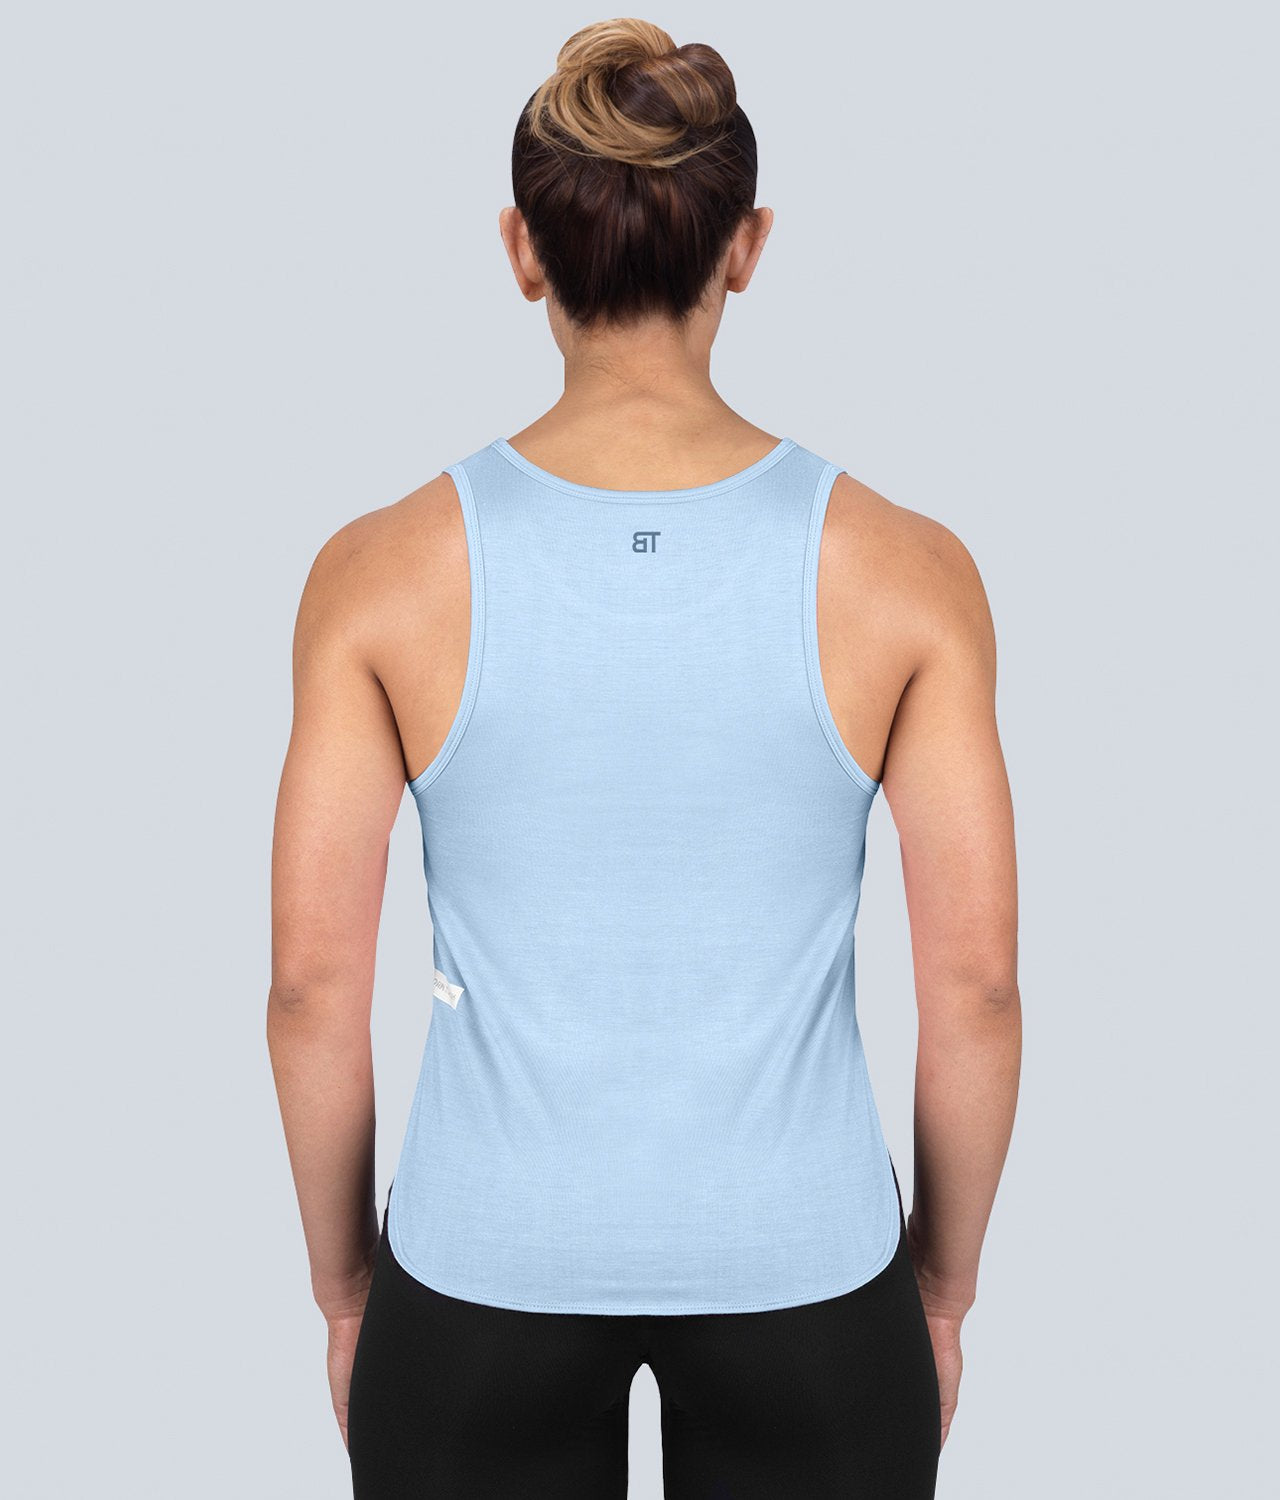 Born Tough United Kingdom Limitless Muscle Lightweight Soft Material Blue Sheer Gym Workout Tank Top for Women